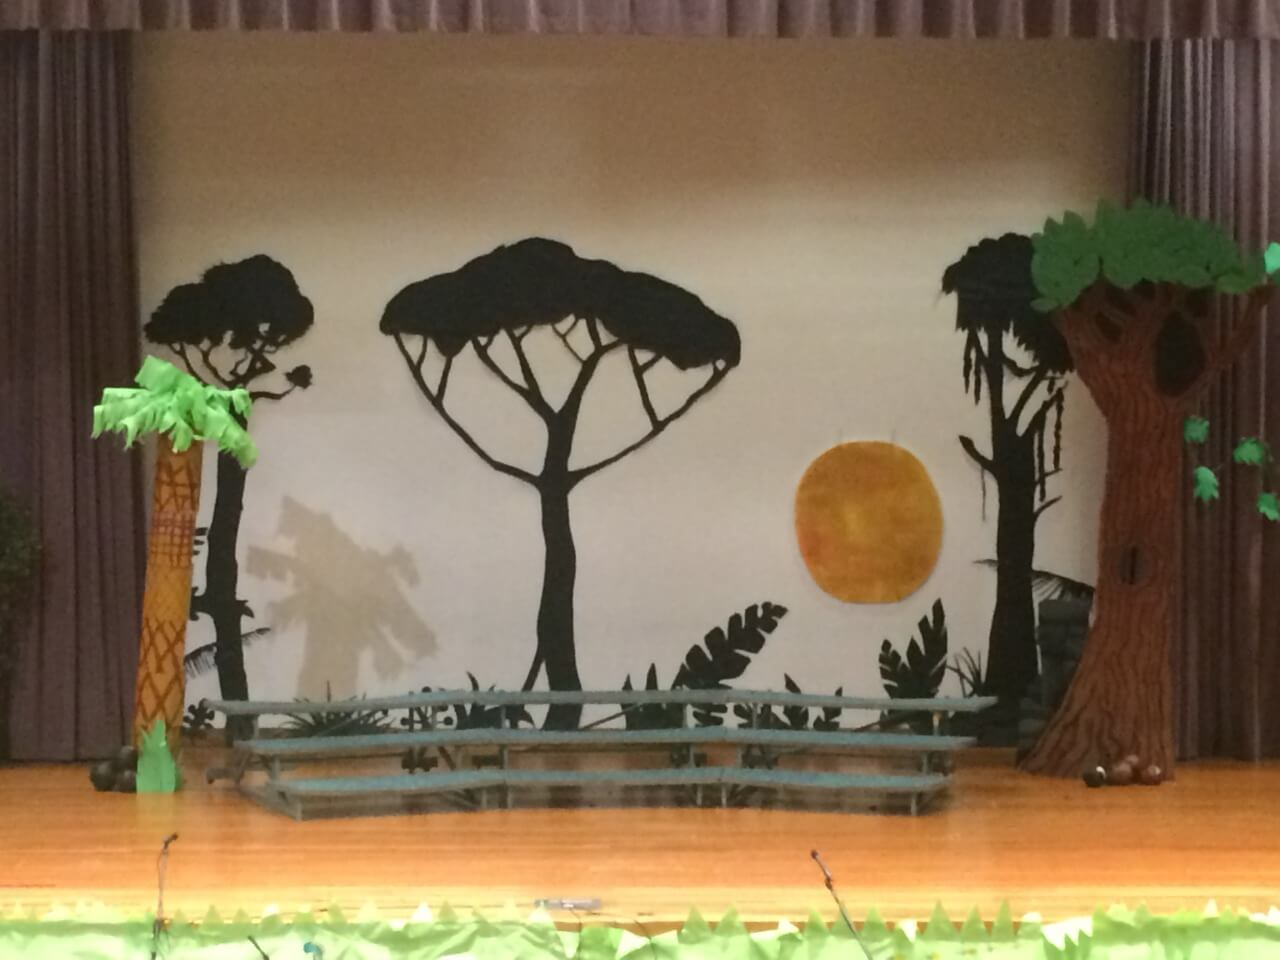 picture of the jungle book stage up close